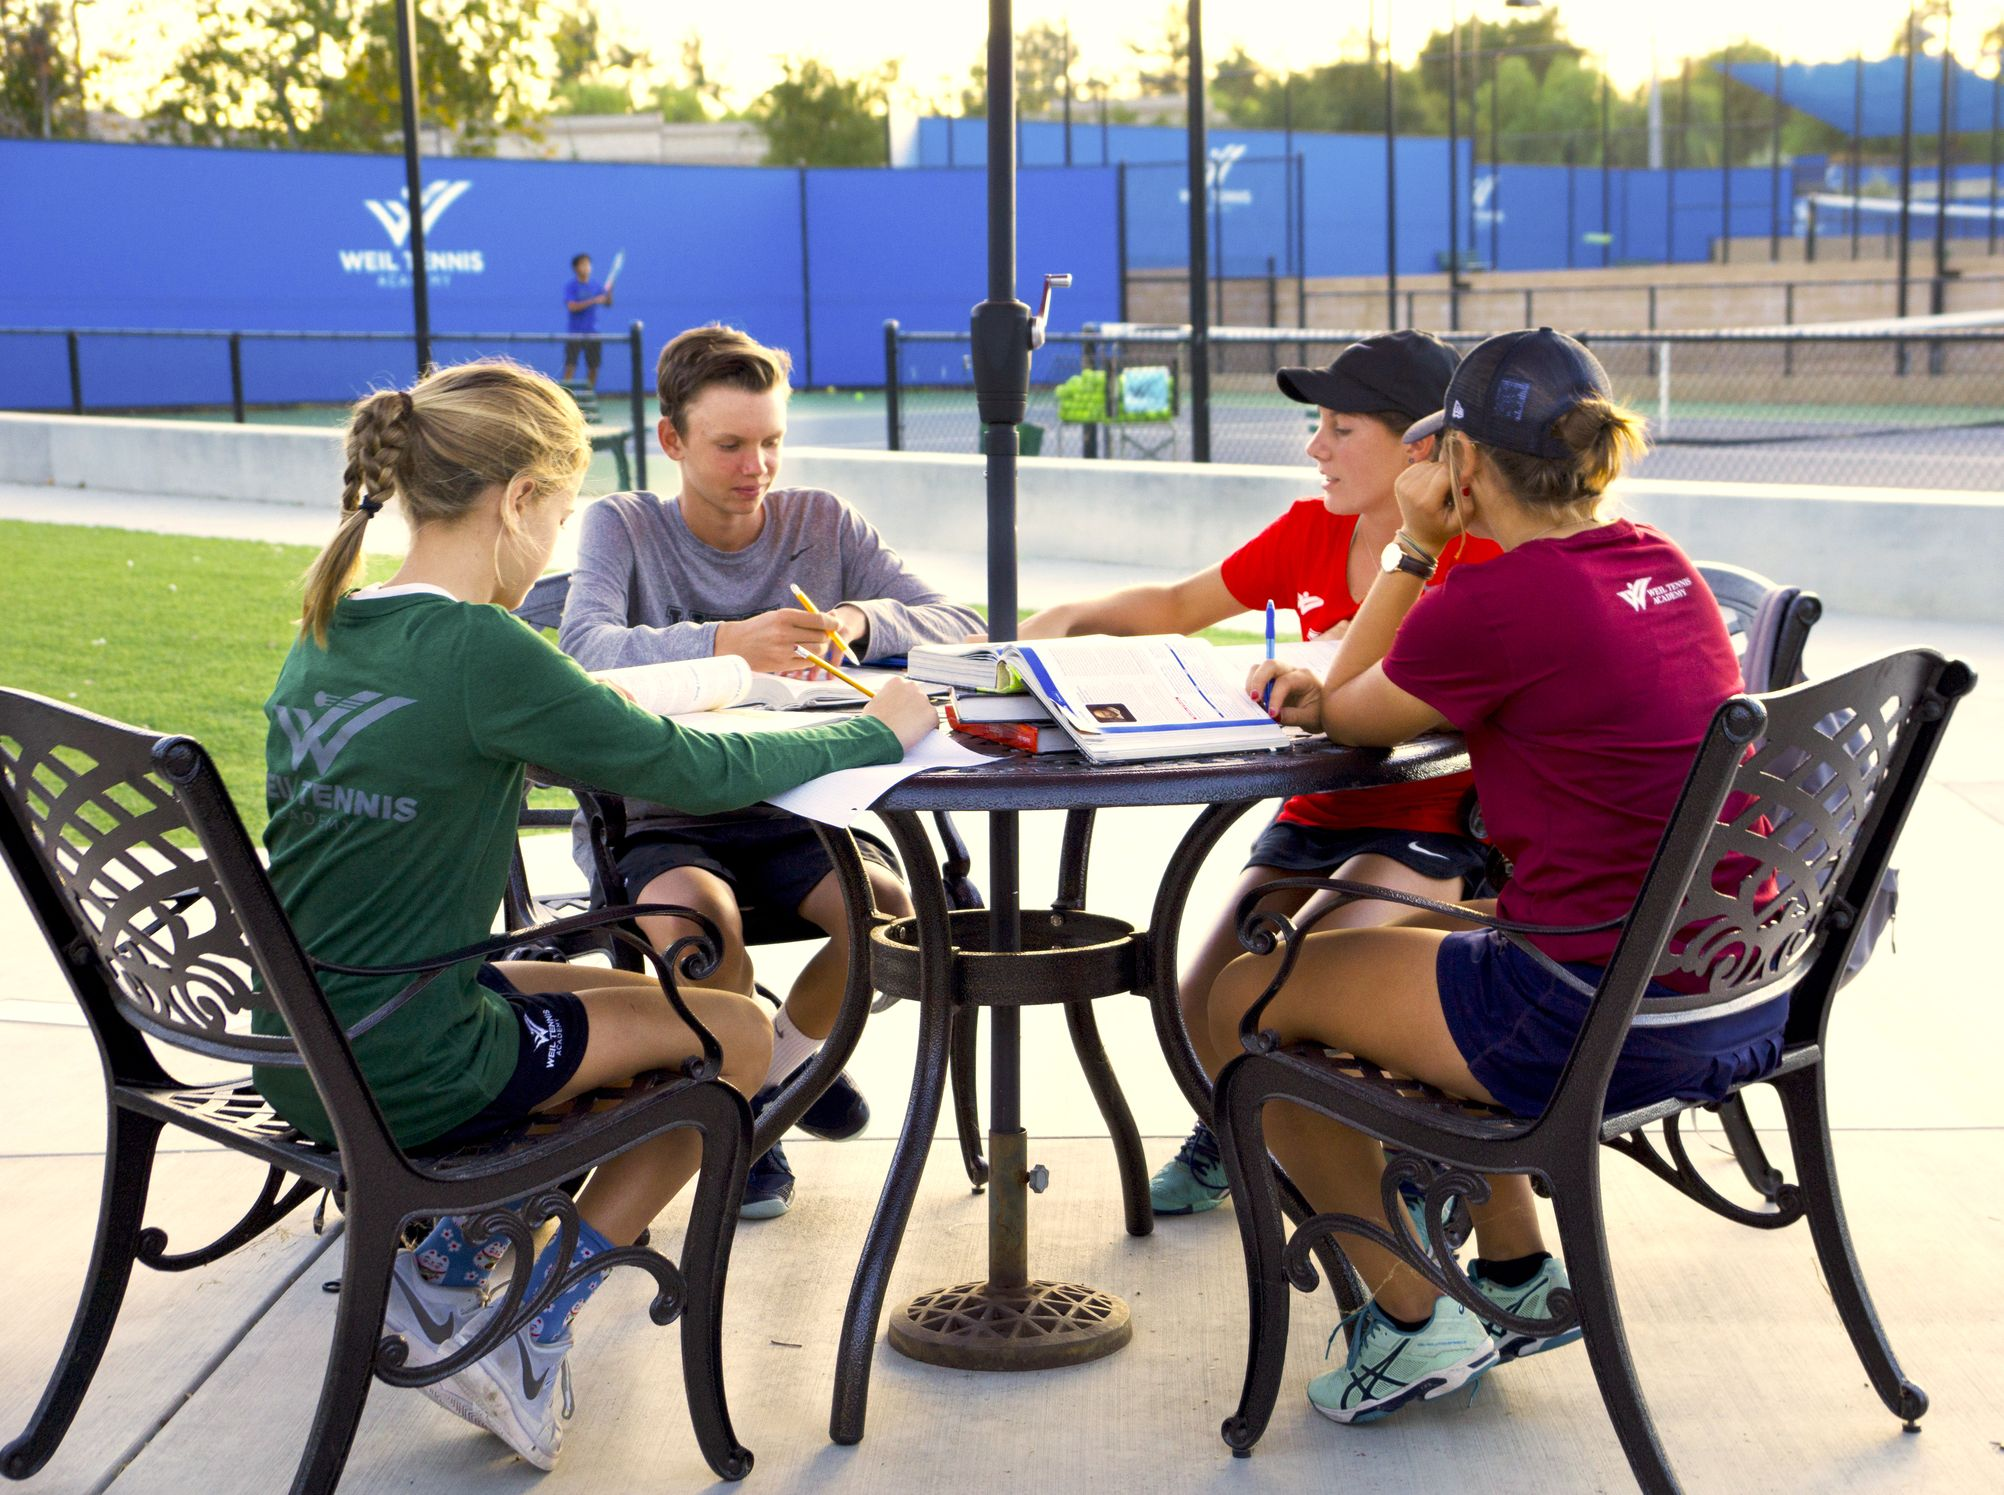 Weil Academy student athletes enjoy study hall outside near the campus tennis courts in Ojai CA near Los Angeles and San Diego.